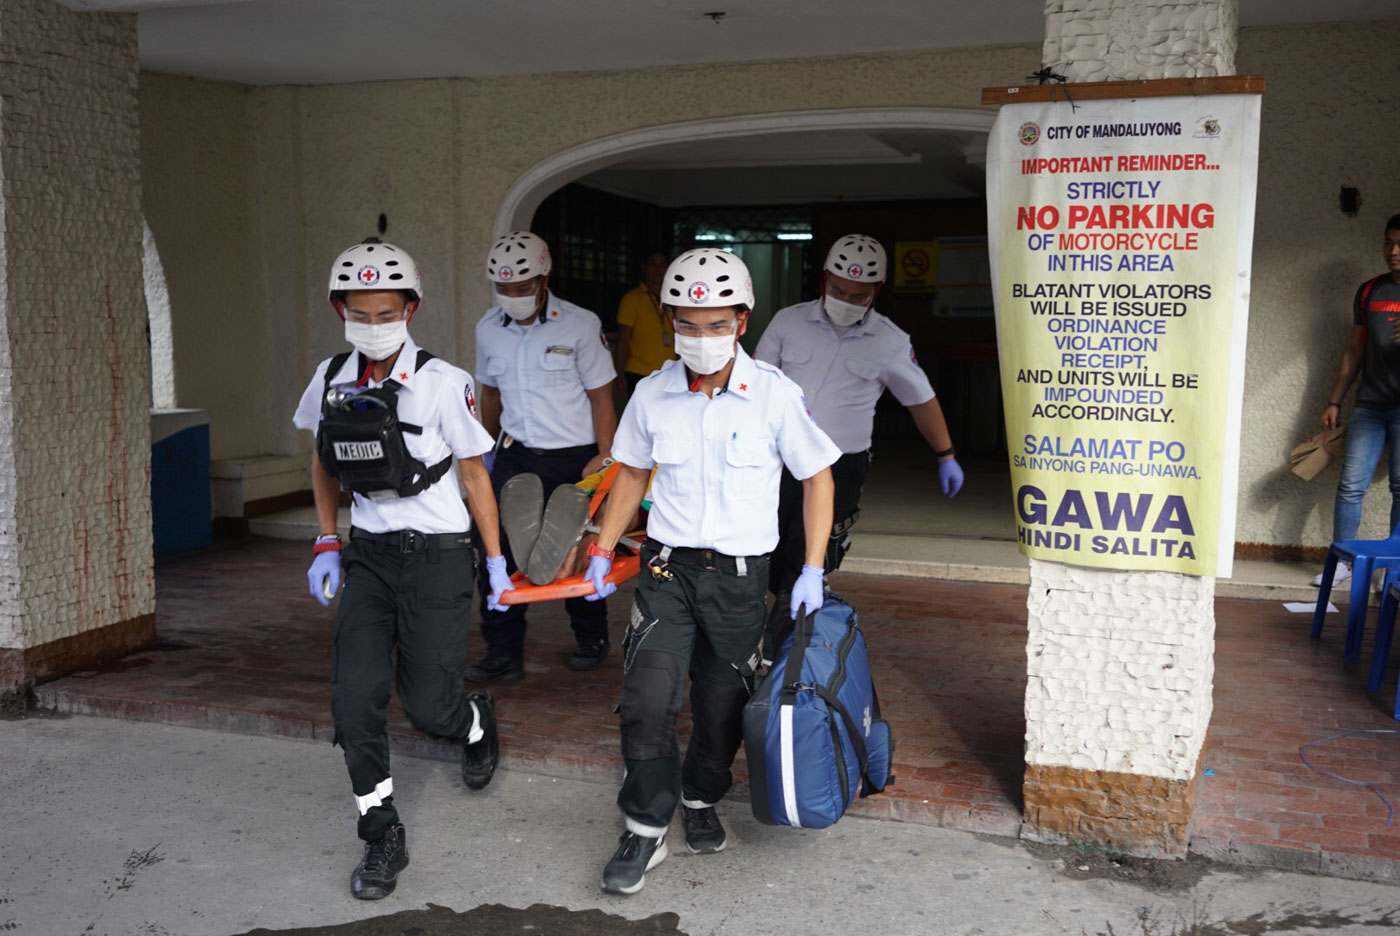 JUST A DRILL. Responders simulate a fire scenario inside the Mandaluyong Legislative Building. Photo by Martin San Diego/Rappler